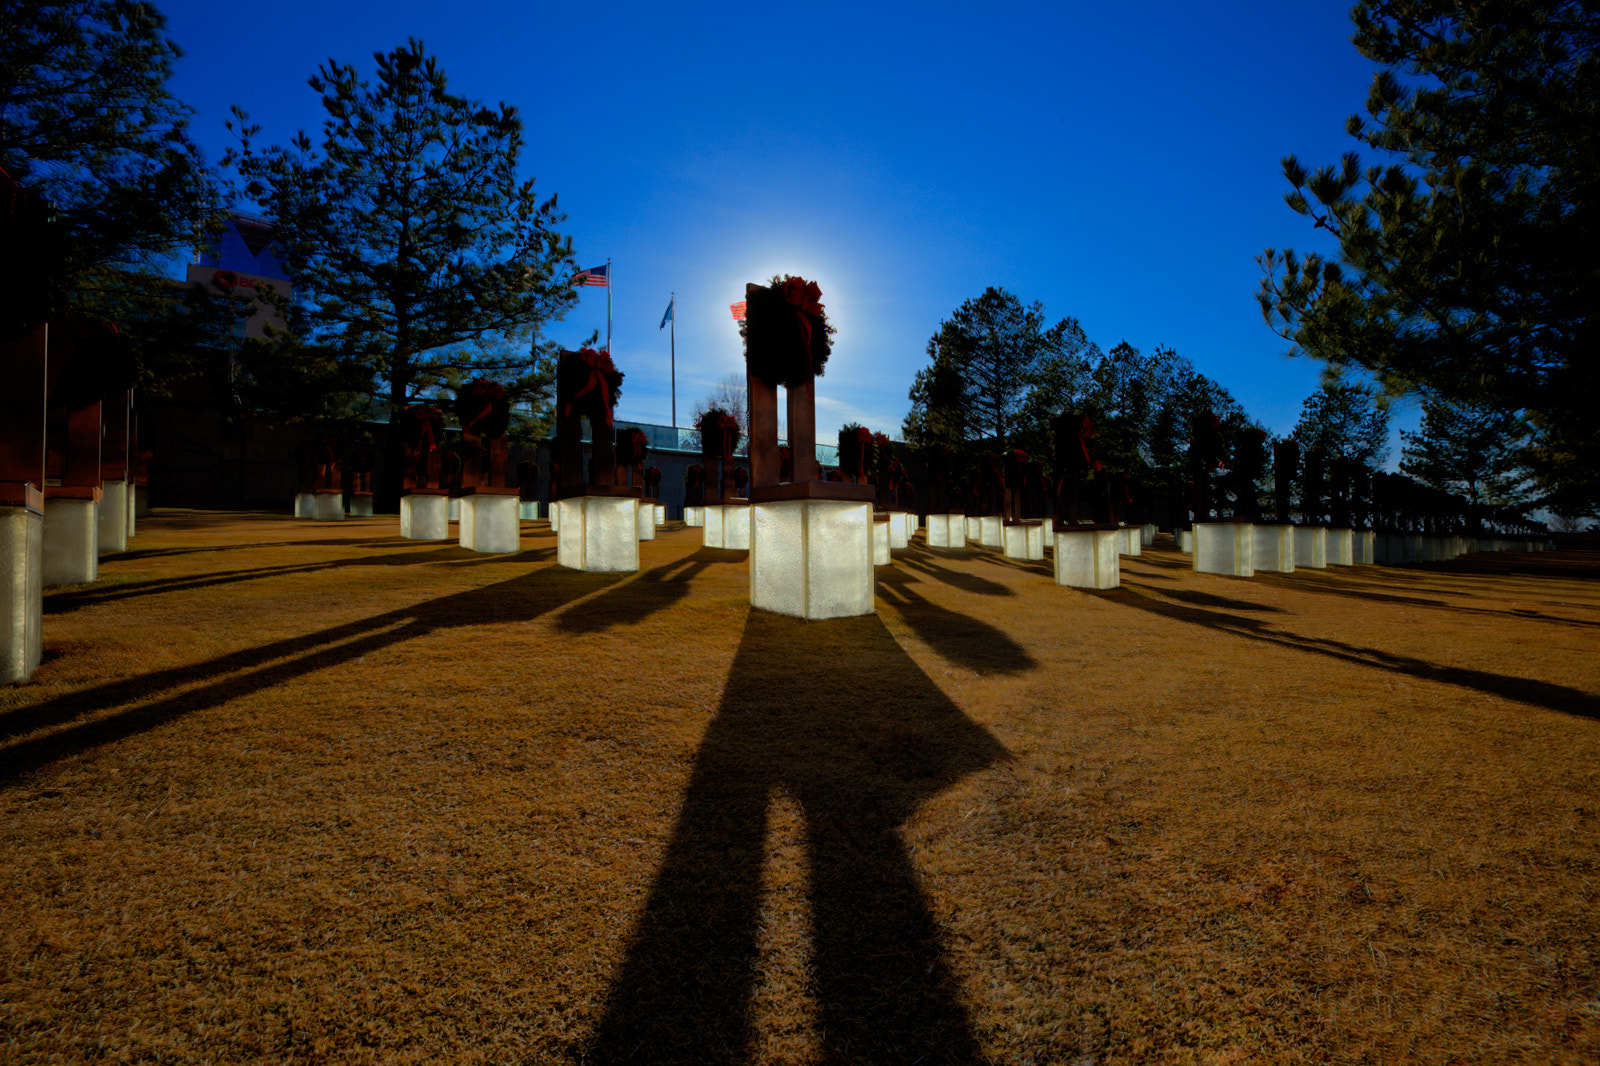 Photograph Oklahoma City Memorial by Kumaran Alagesan on 500px